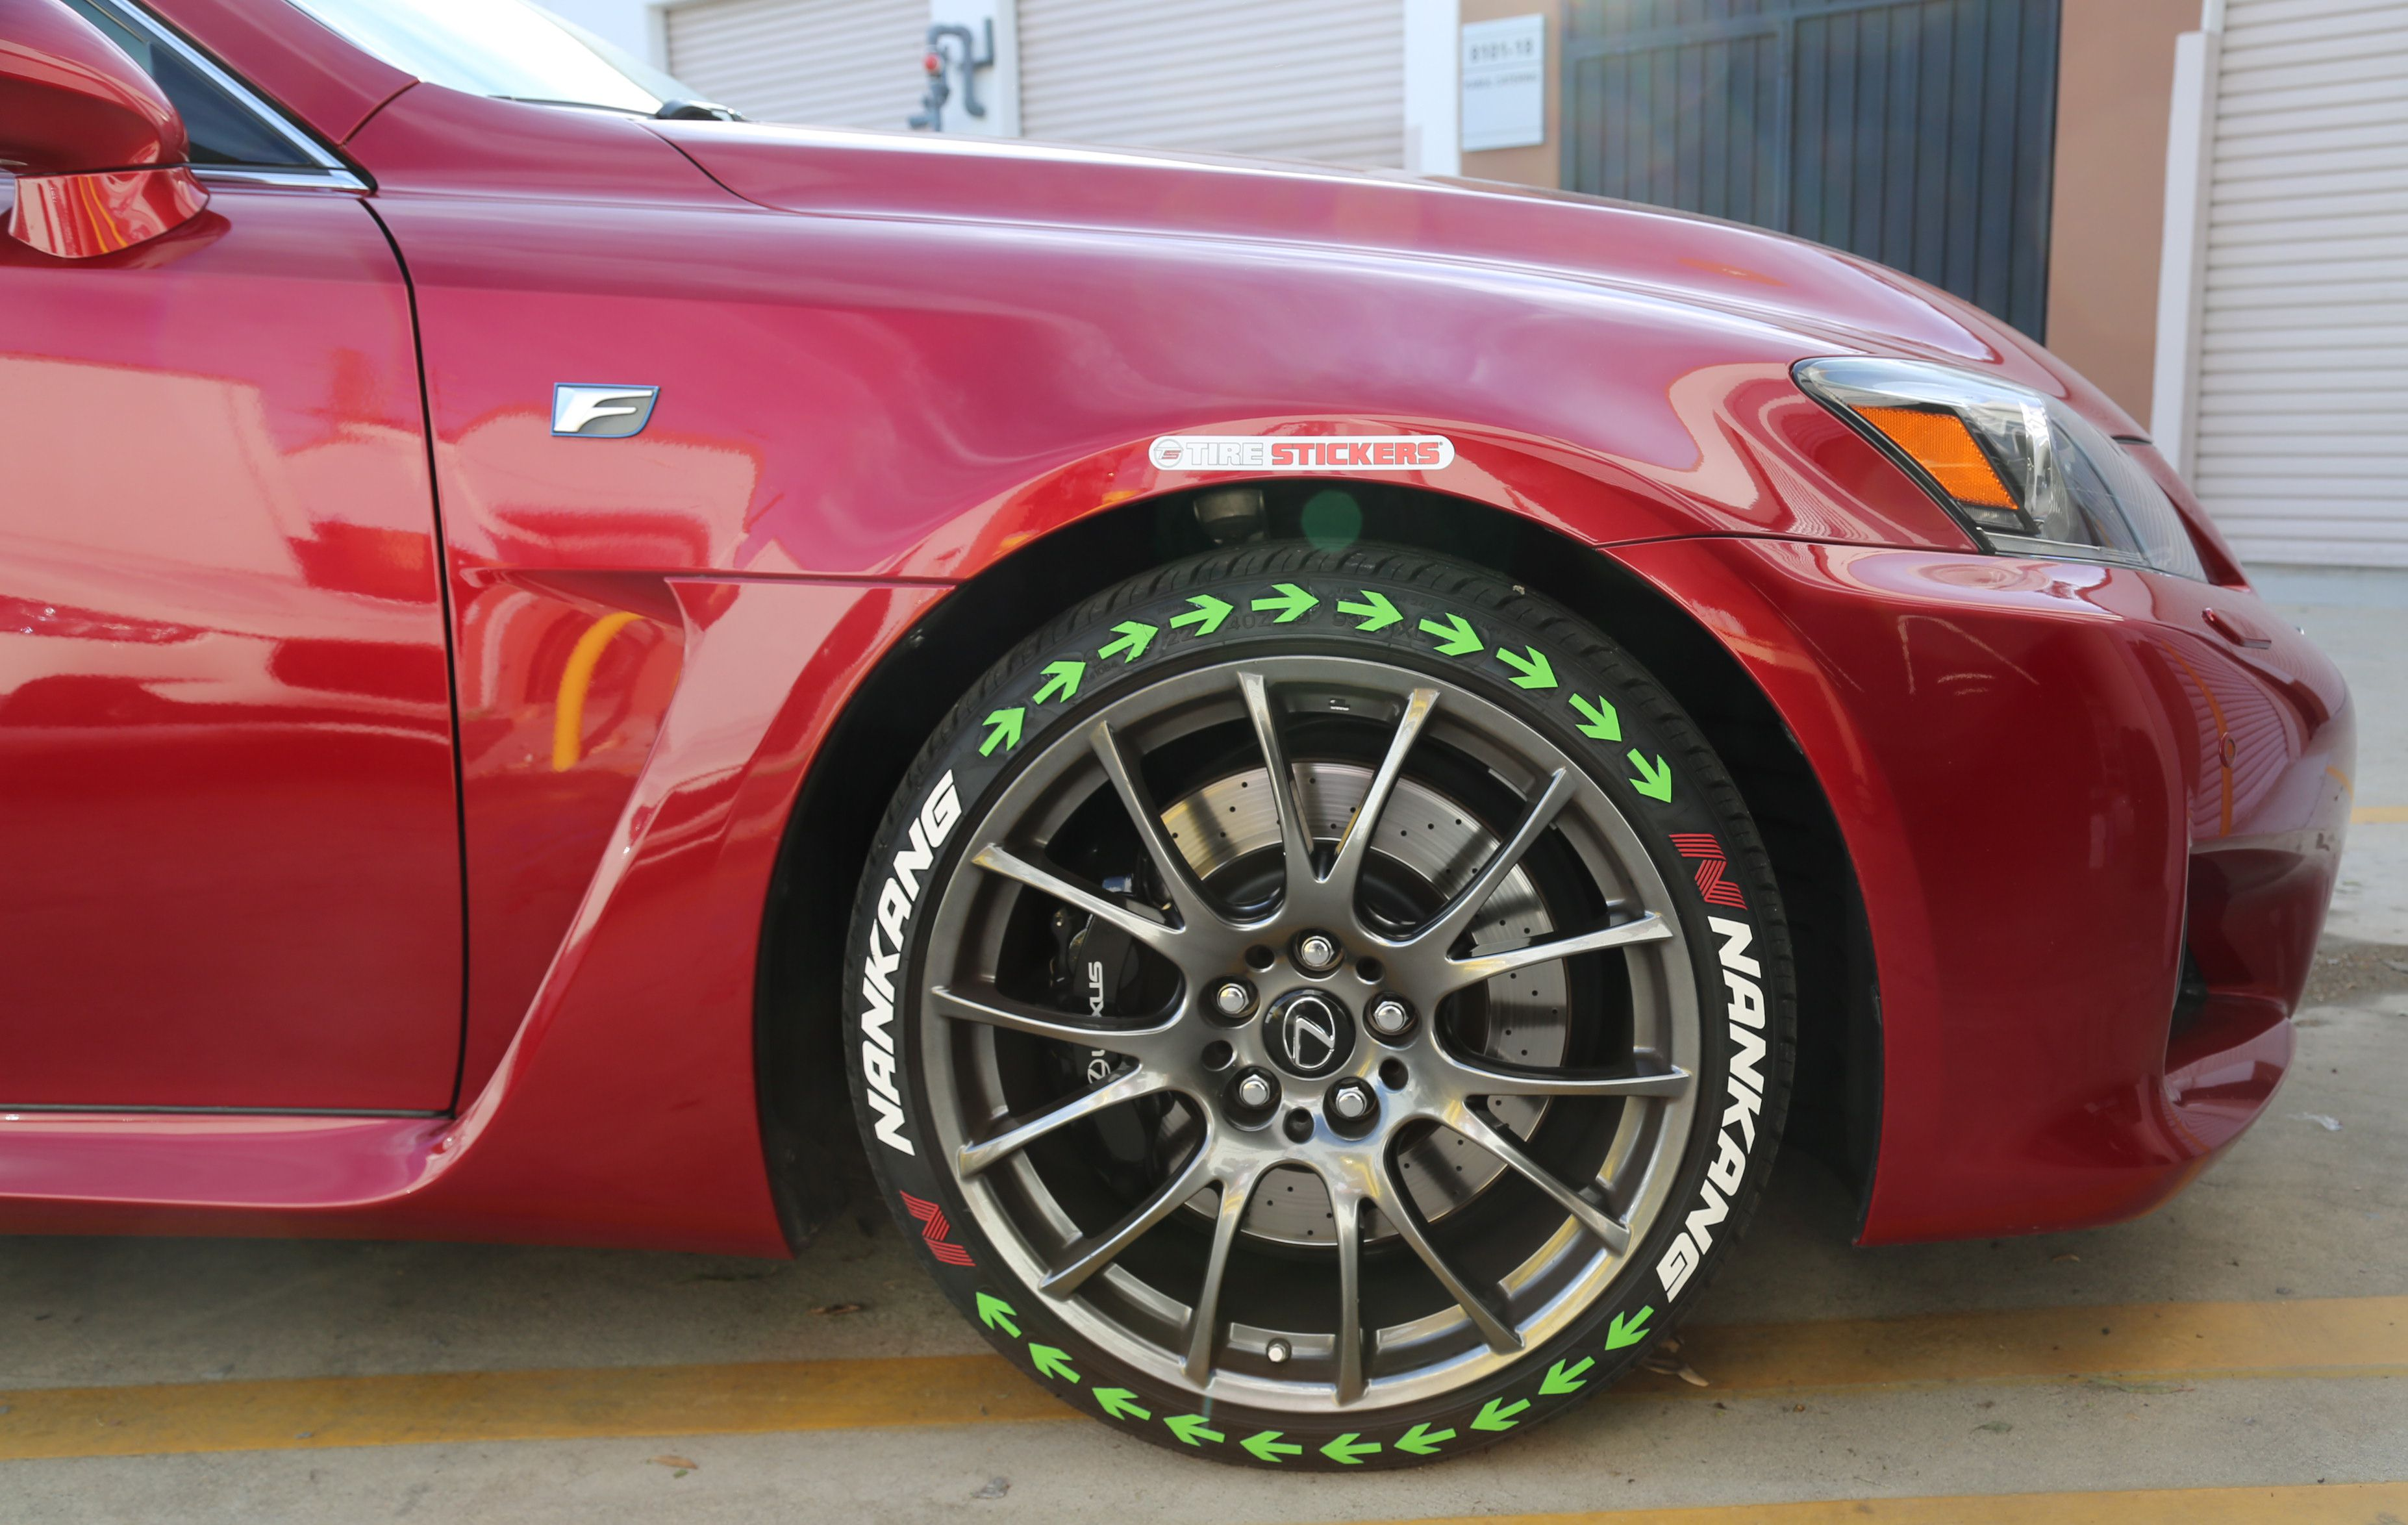 Nankank Tires White Lettering Green Arrows Tire Stickers Com